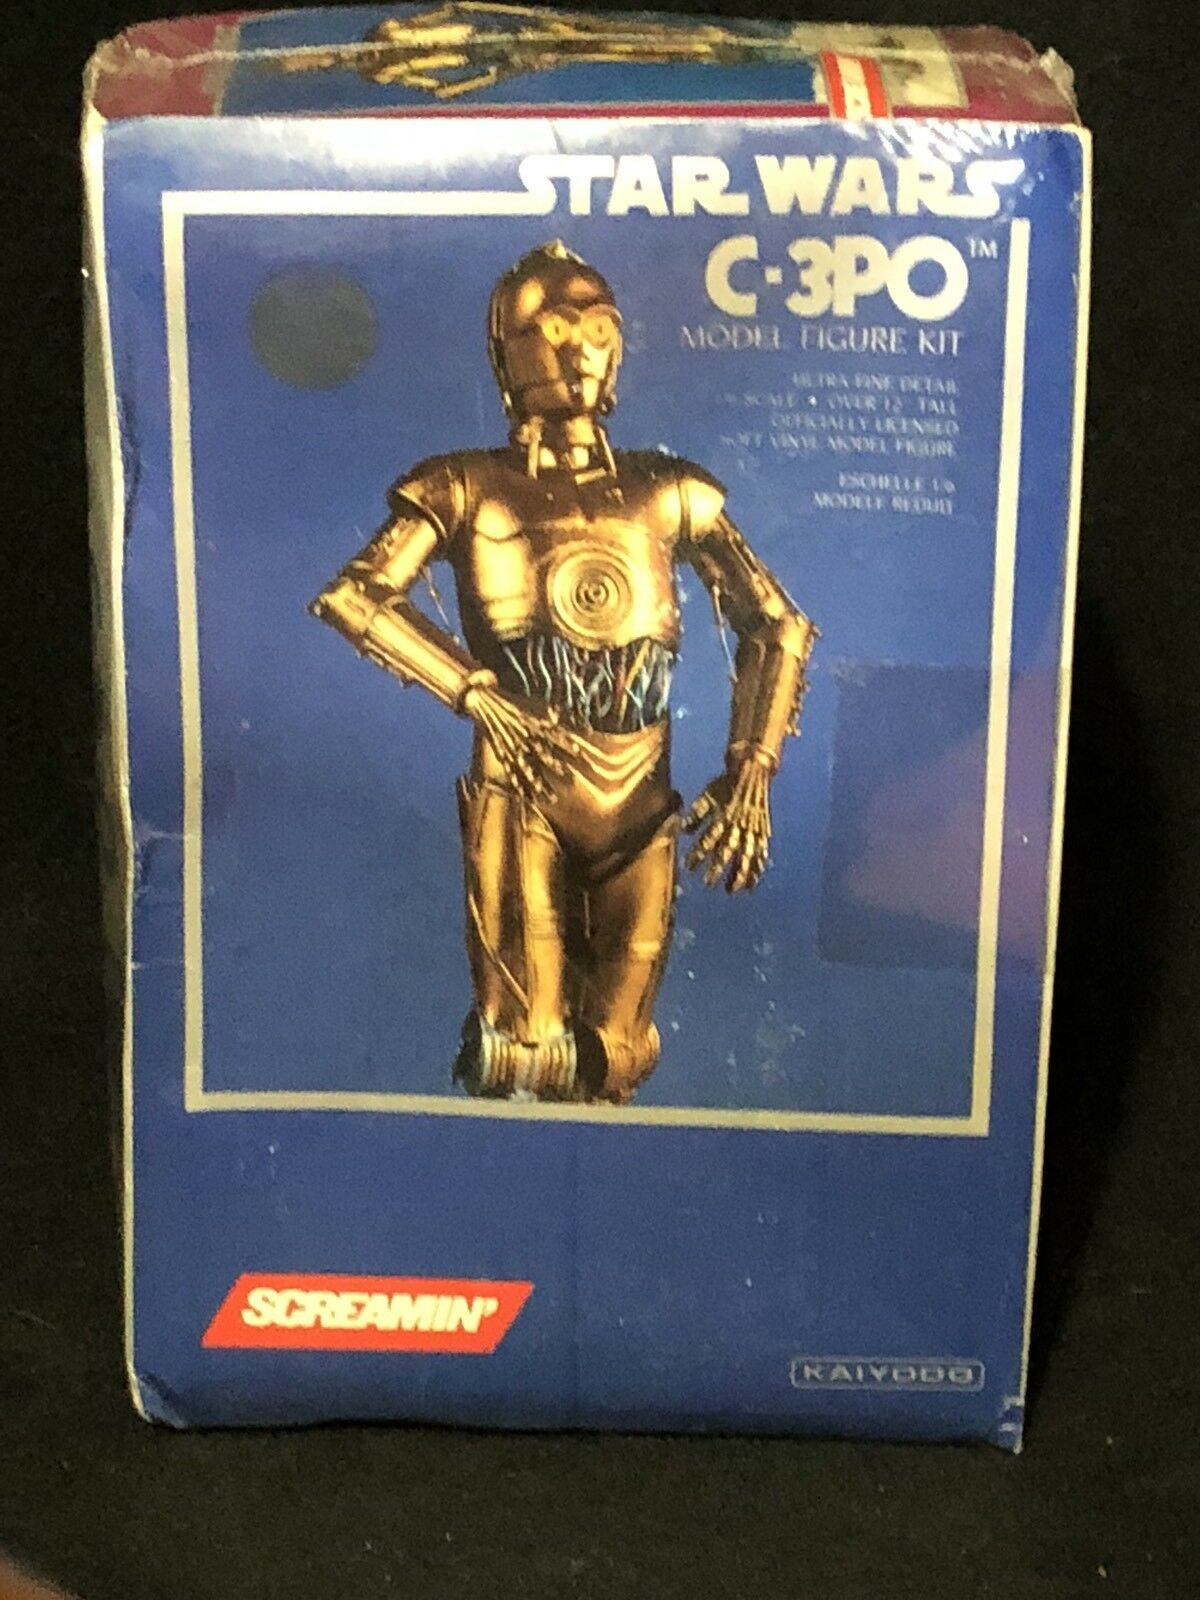 Screamin' Star Wars C-3PO Model Figure Set New in Box